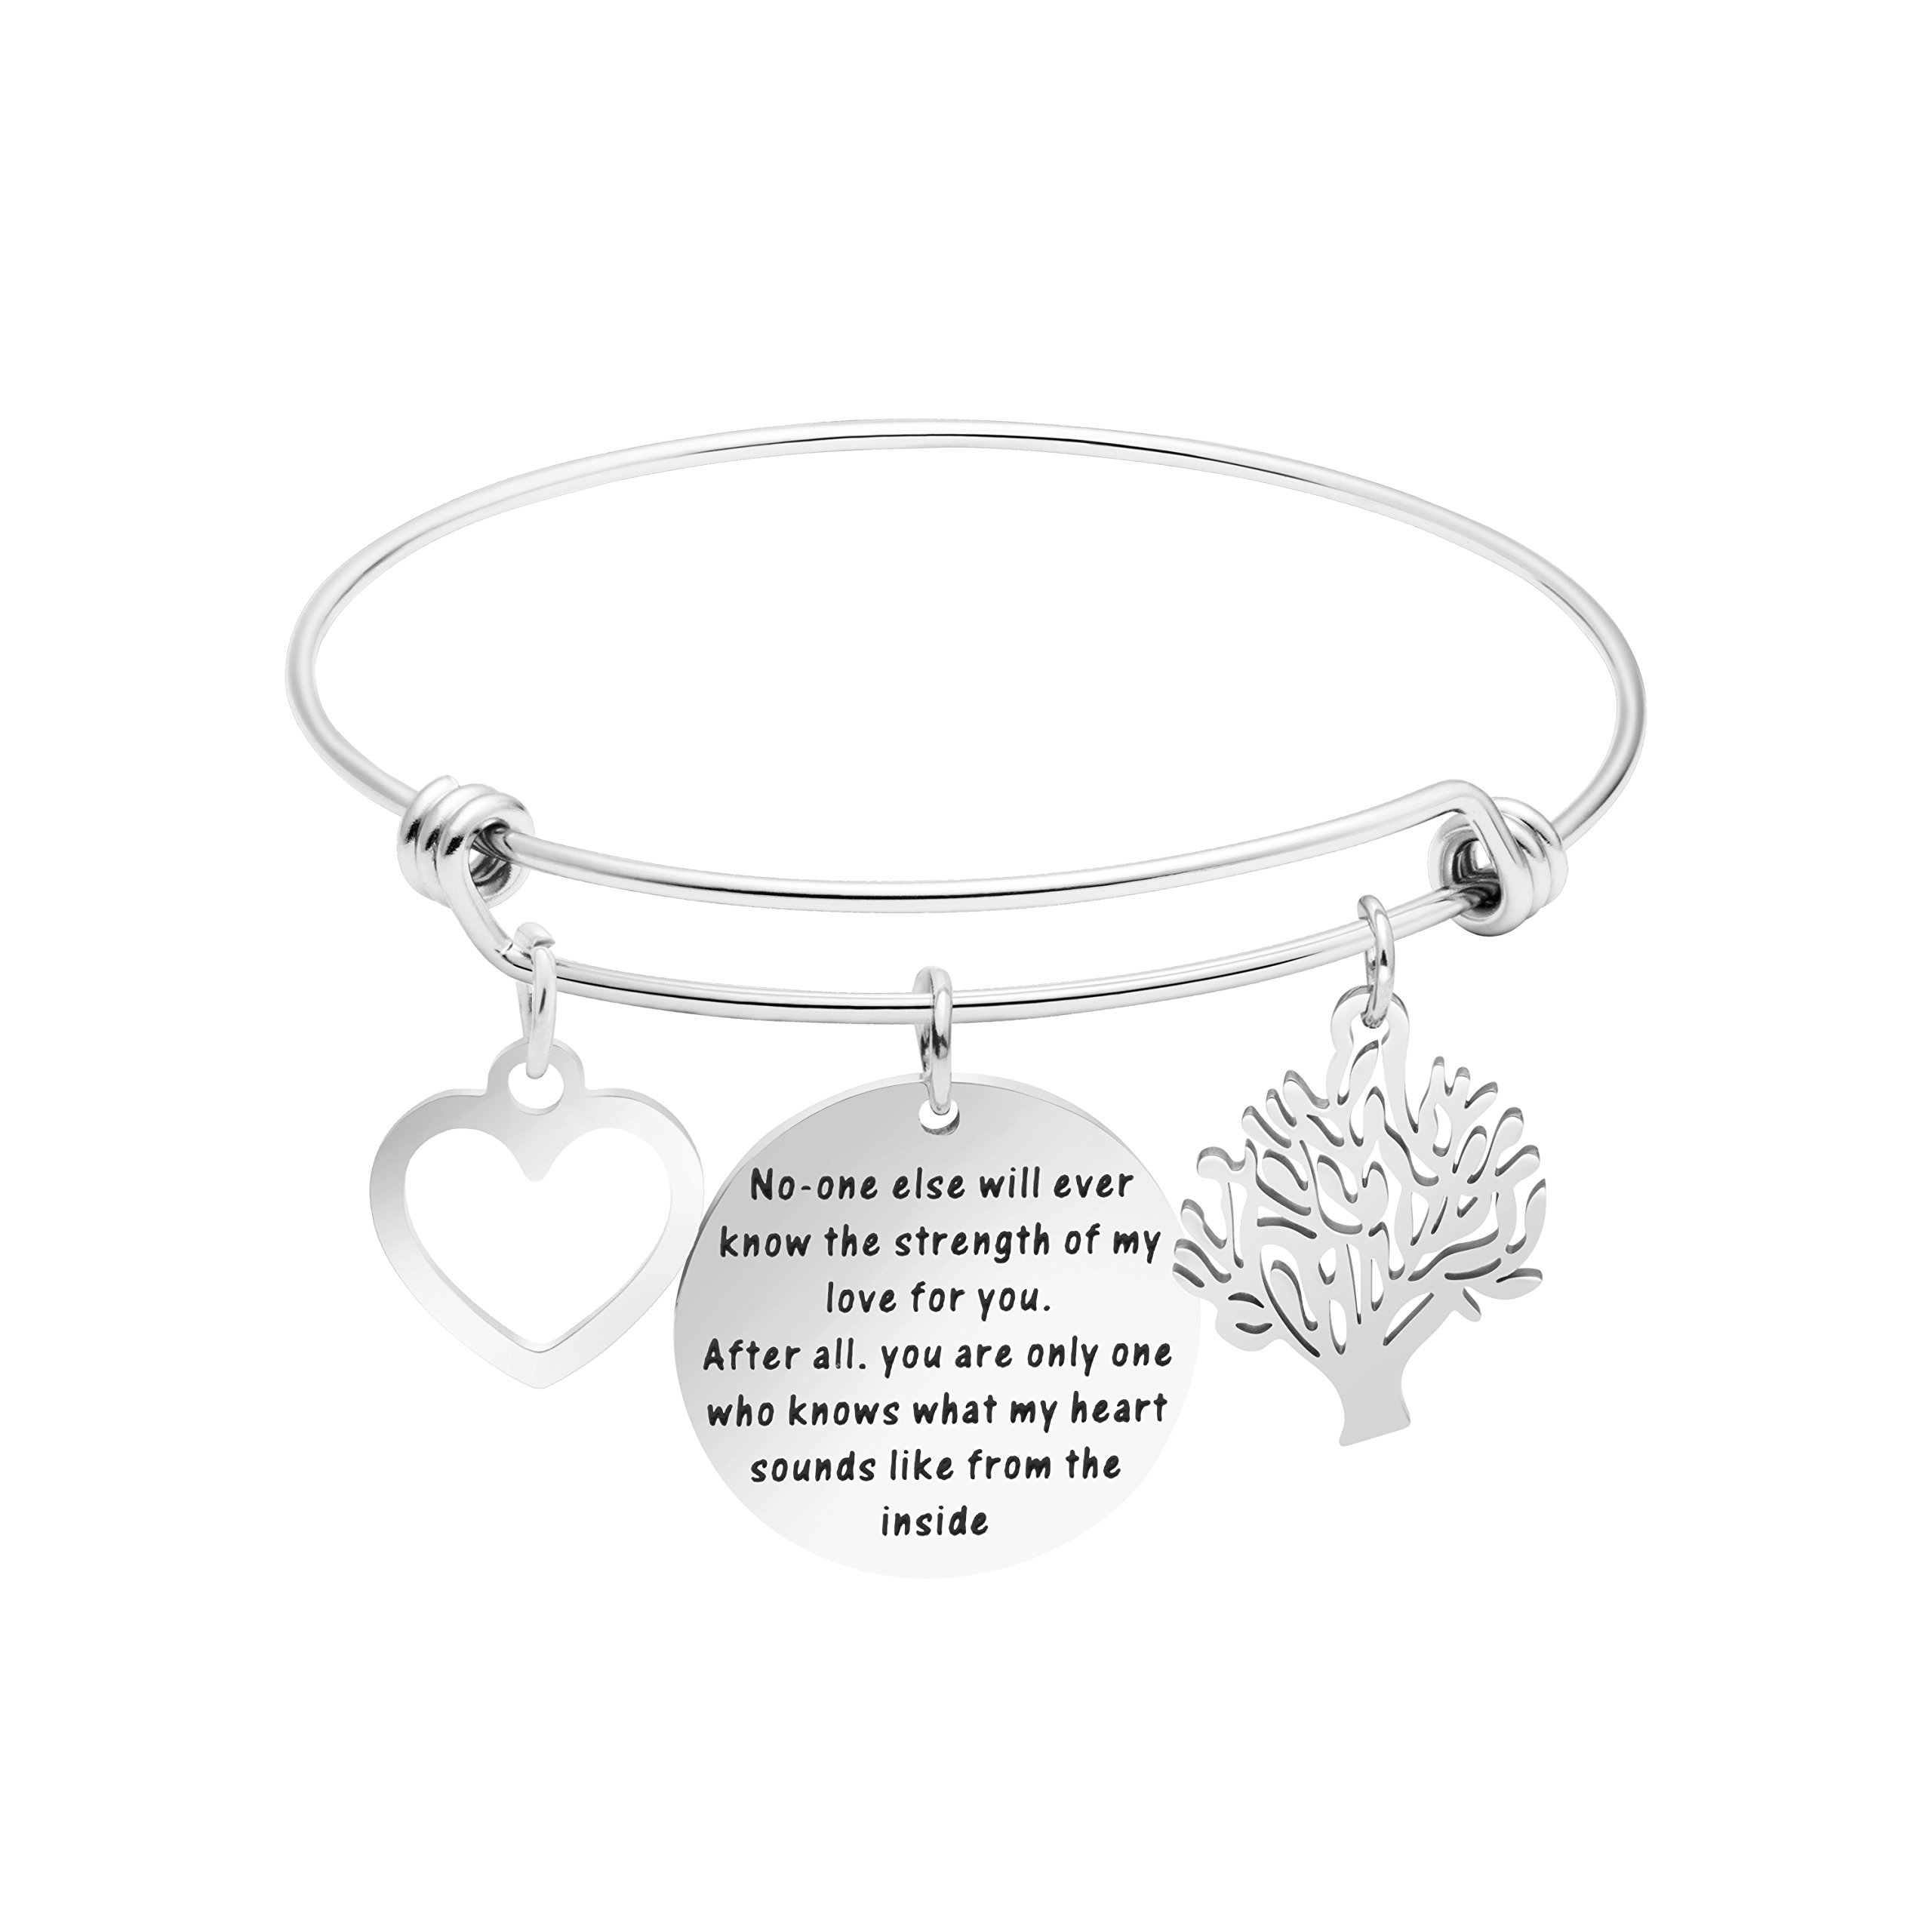 Yiyang Gift for Mother Inspirational Bracelets Stainless Steel Silver Bangle Bracelet Jewelry for Mom Mantra No-one Eles will ever know the strength of my love for you